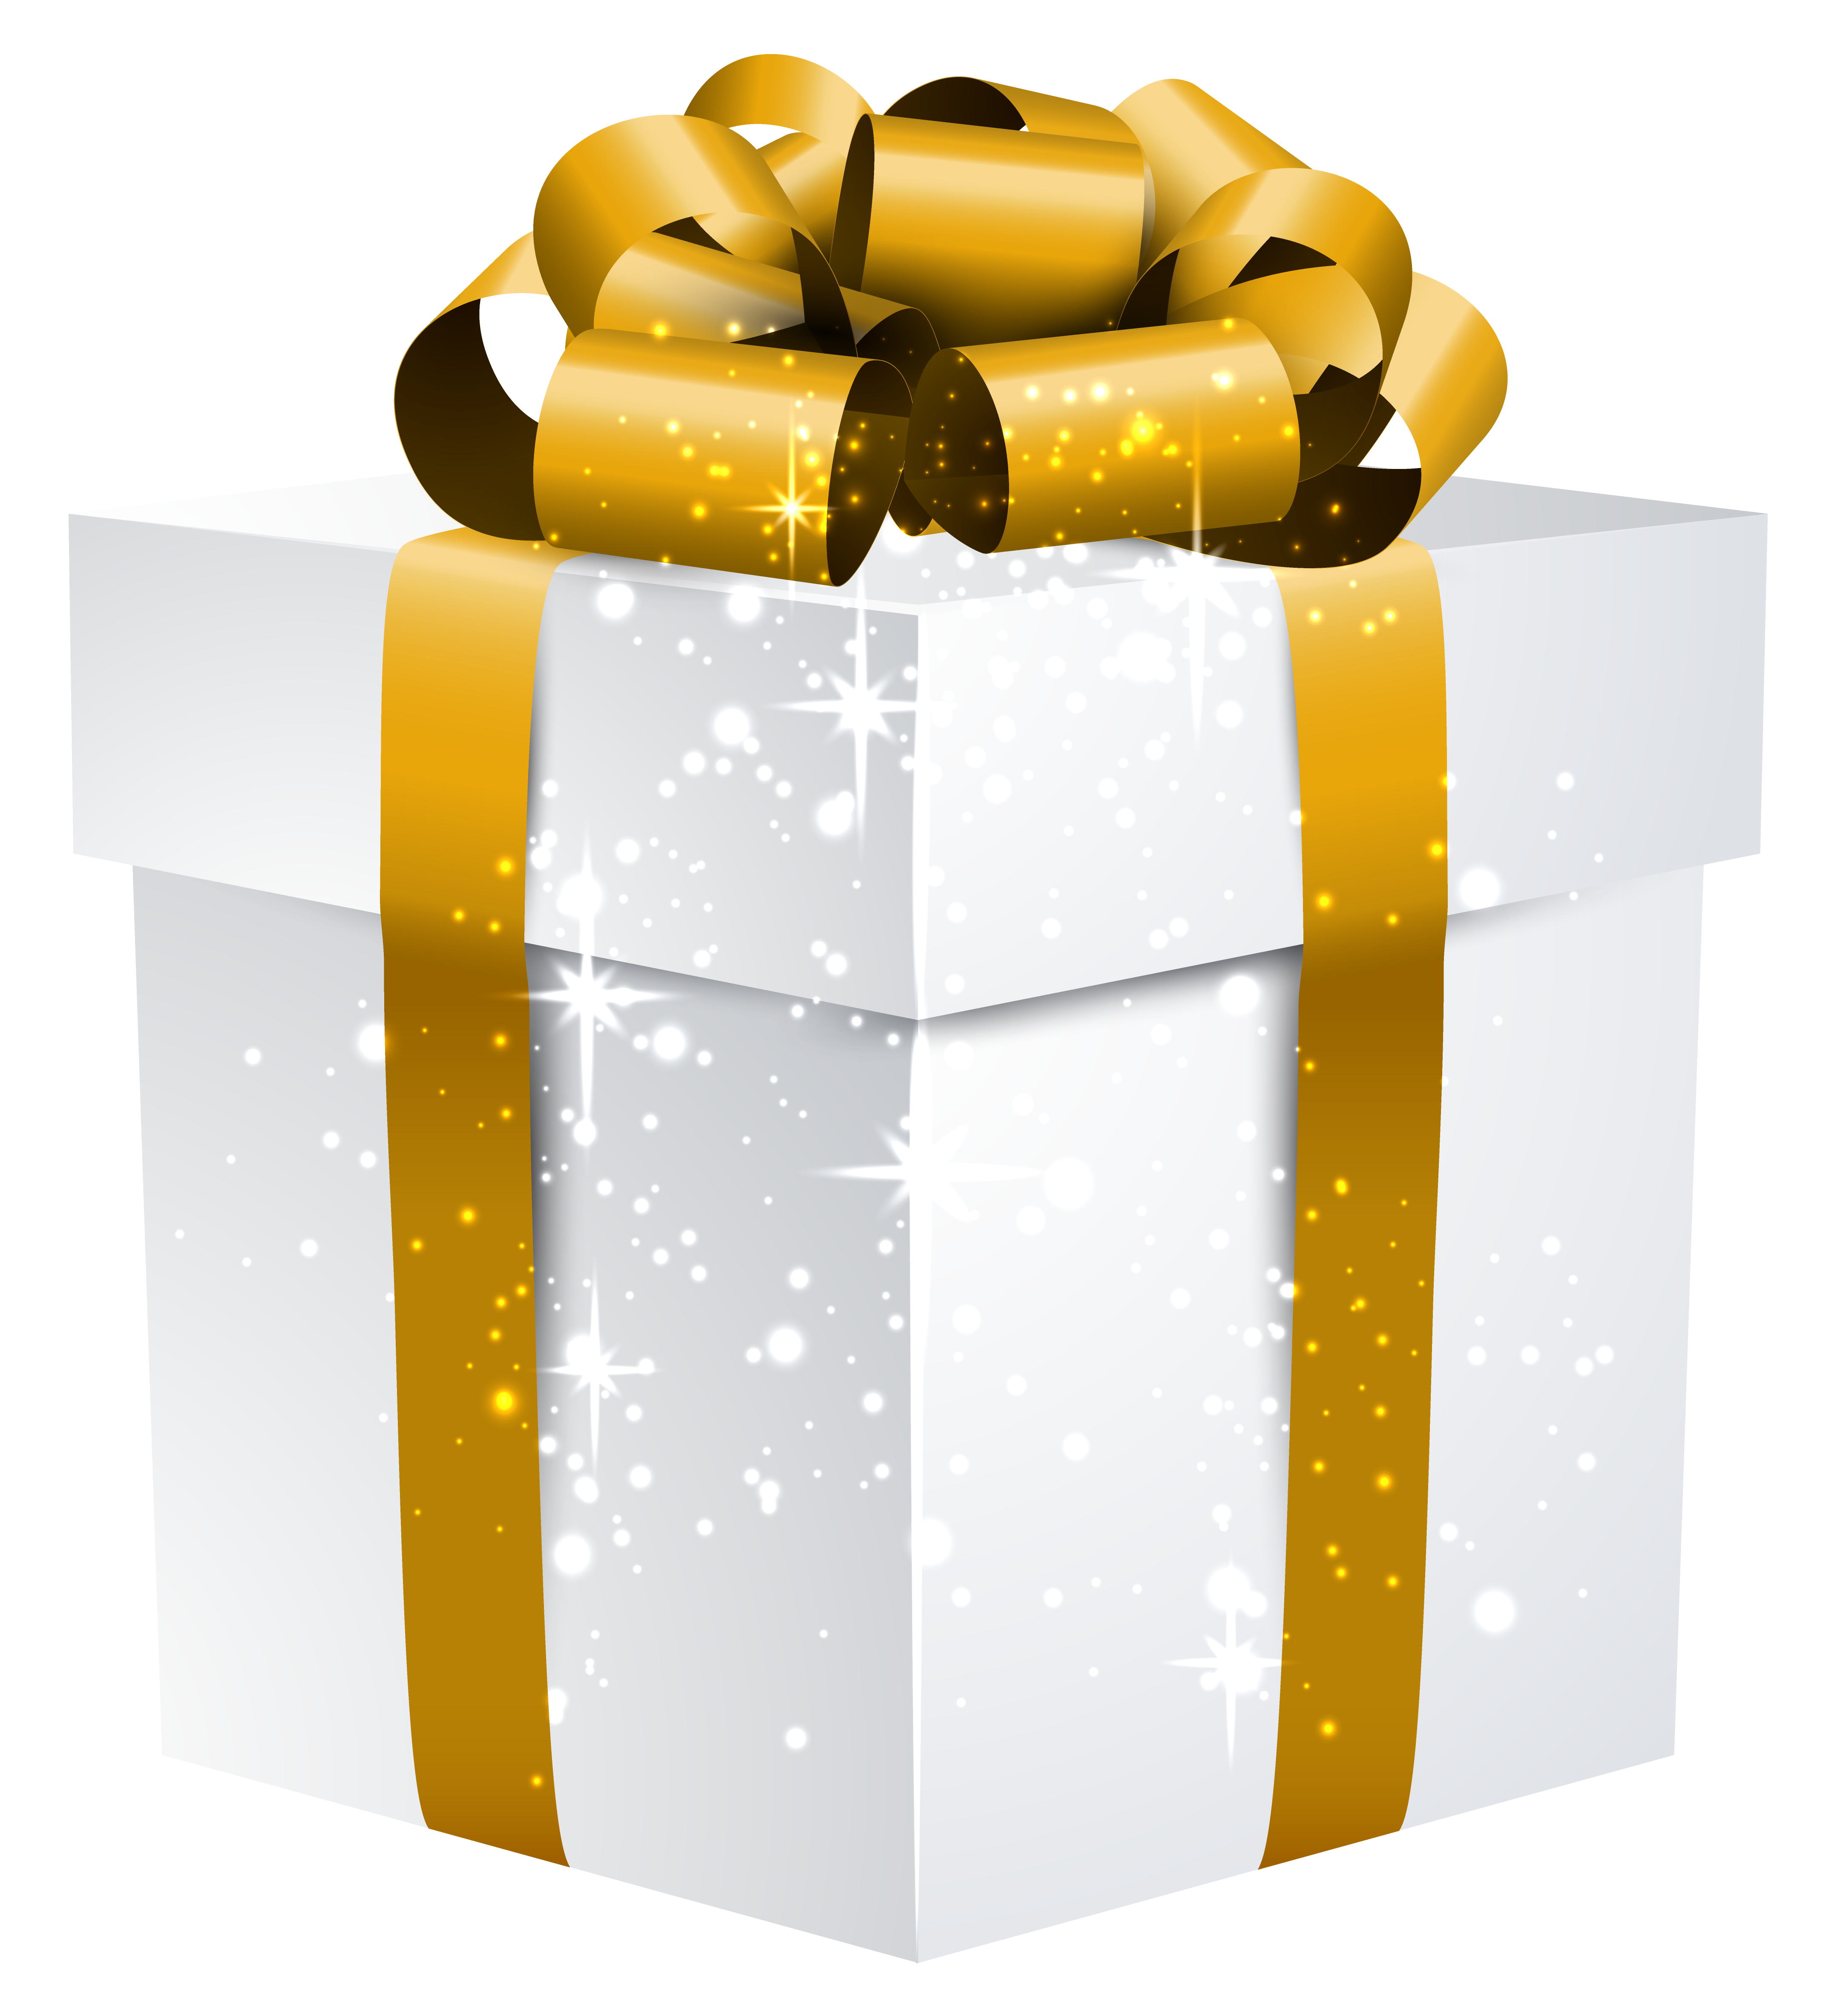 png black and white library Gifts clipart gold. White shining gift box